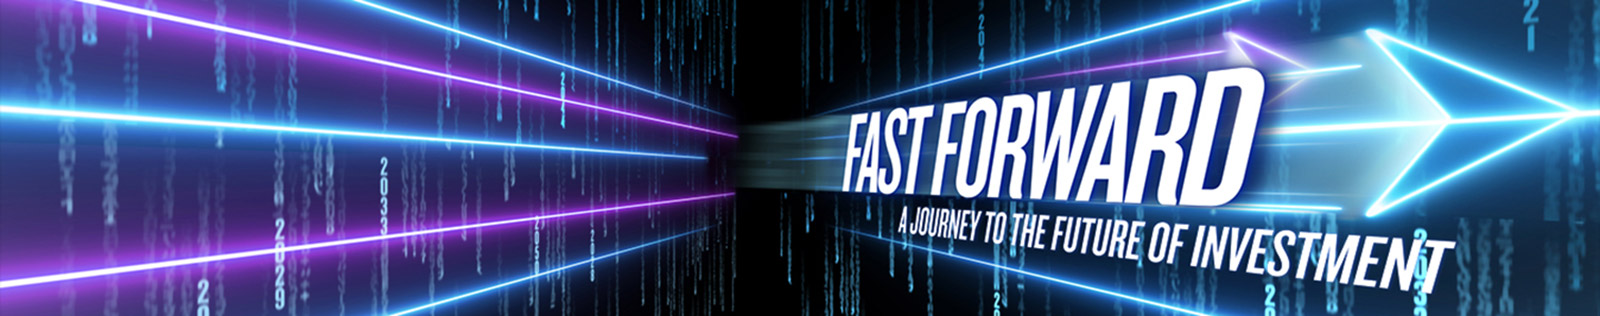 Fast Forward. A journey to the future of investment.